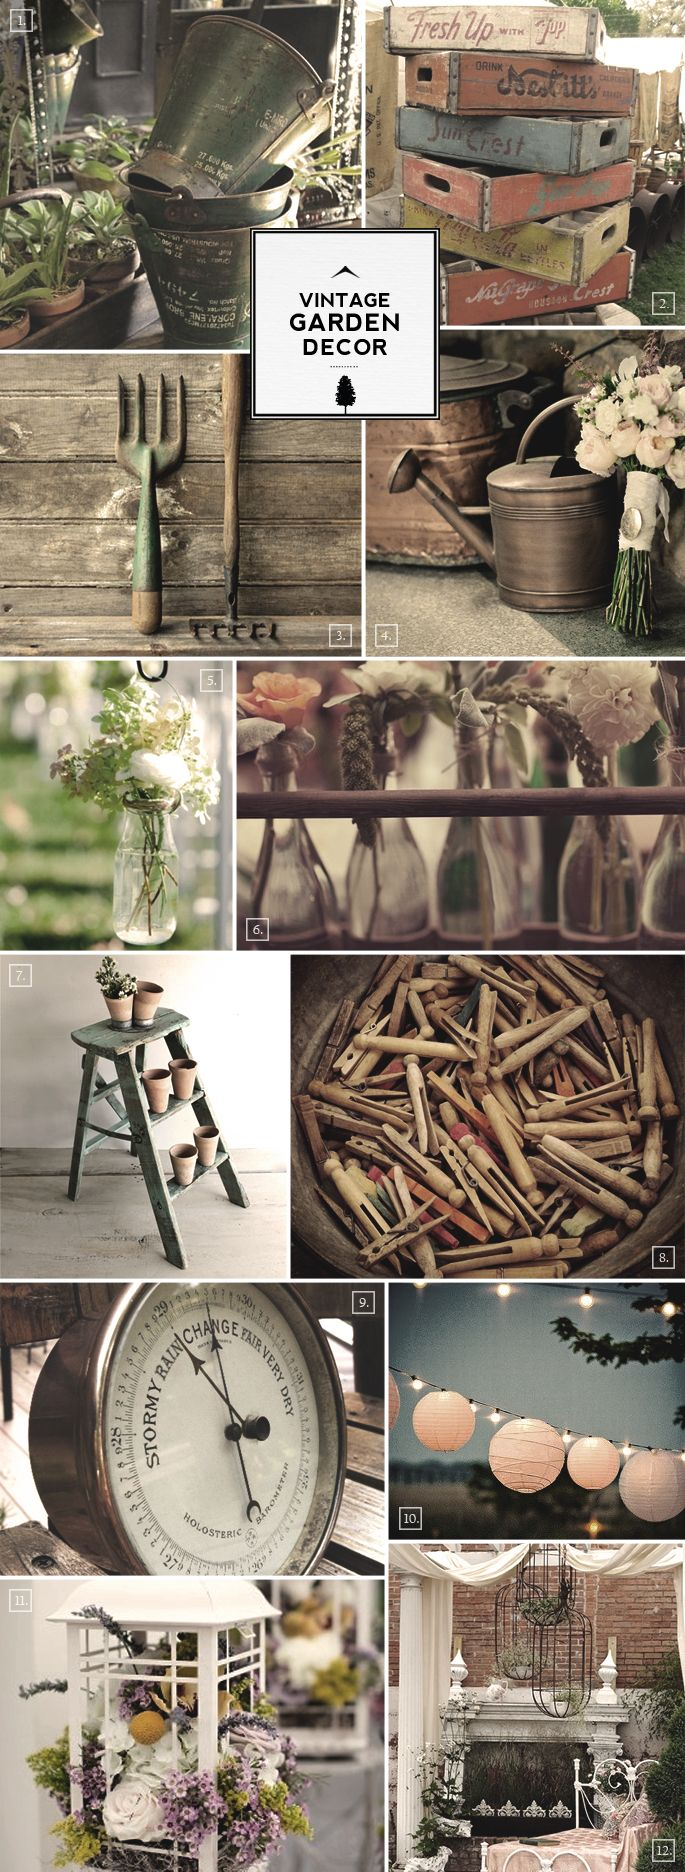 370 best images about Vintage Rustic Country Home Decorating Ideas on  Pinterest   Rustic wood  Shelves and Repurposed. 370 best images about Vintage Rustic Country Home Decorating Ideas